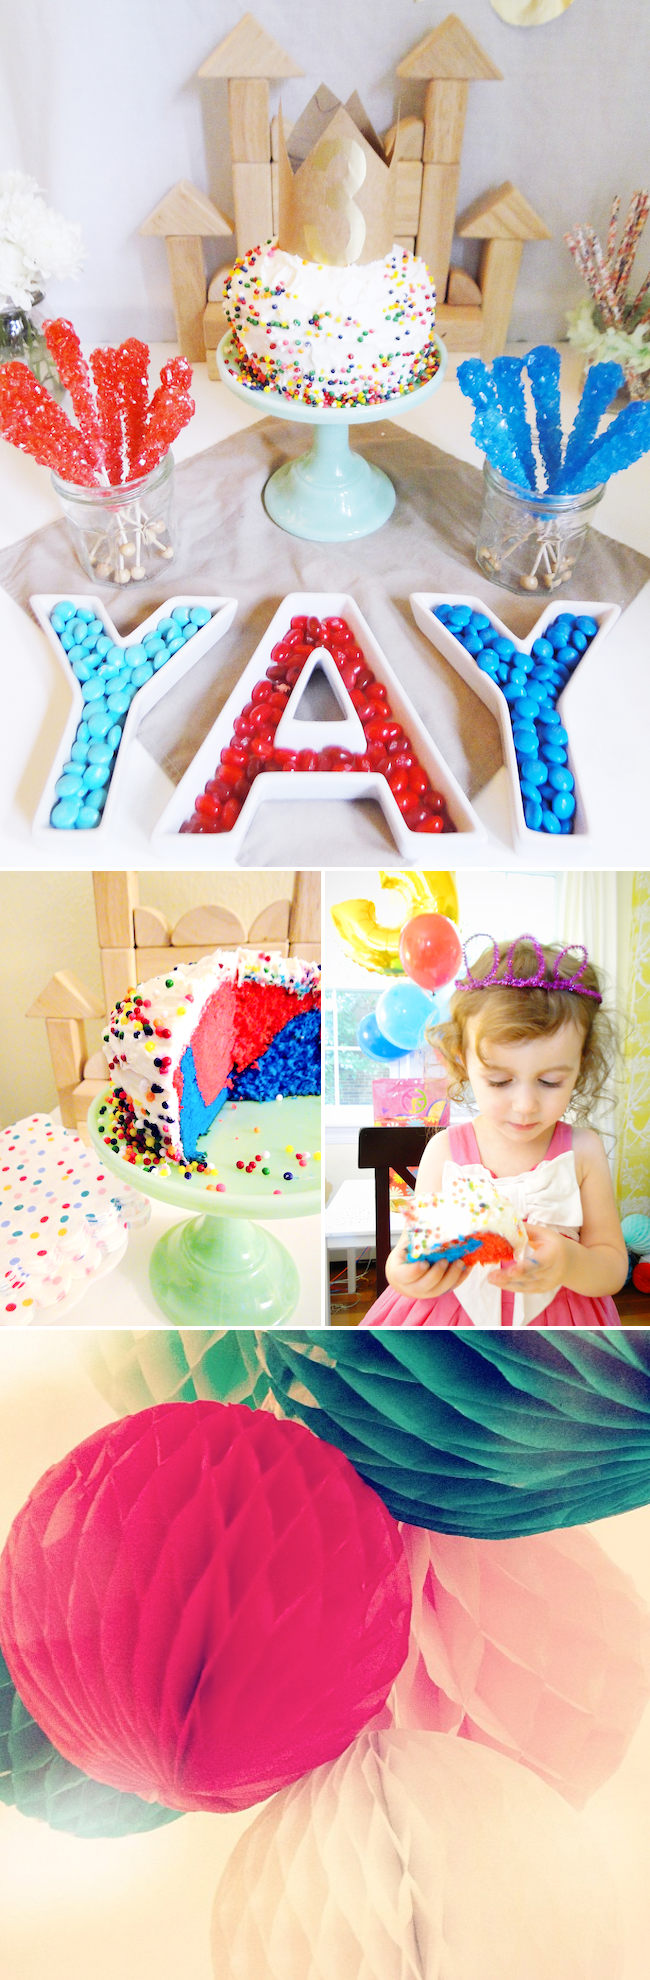 A-Lovely-Lark-Violets-3rd-Birthday